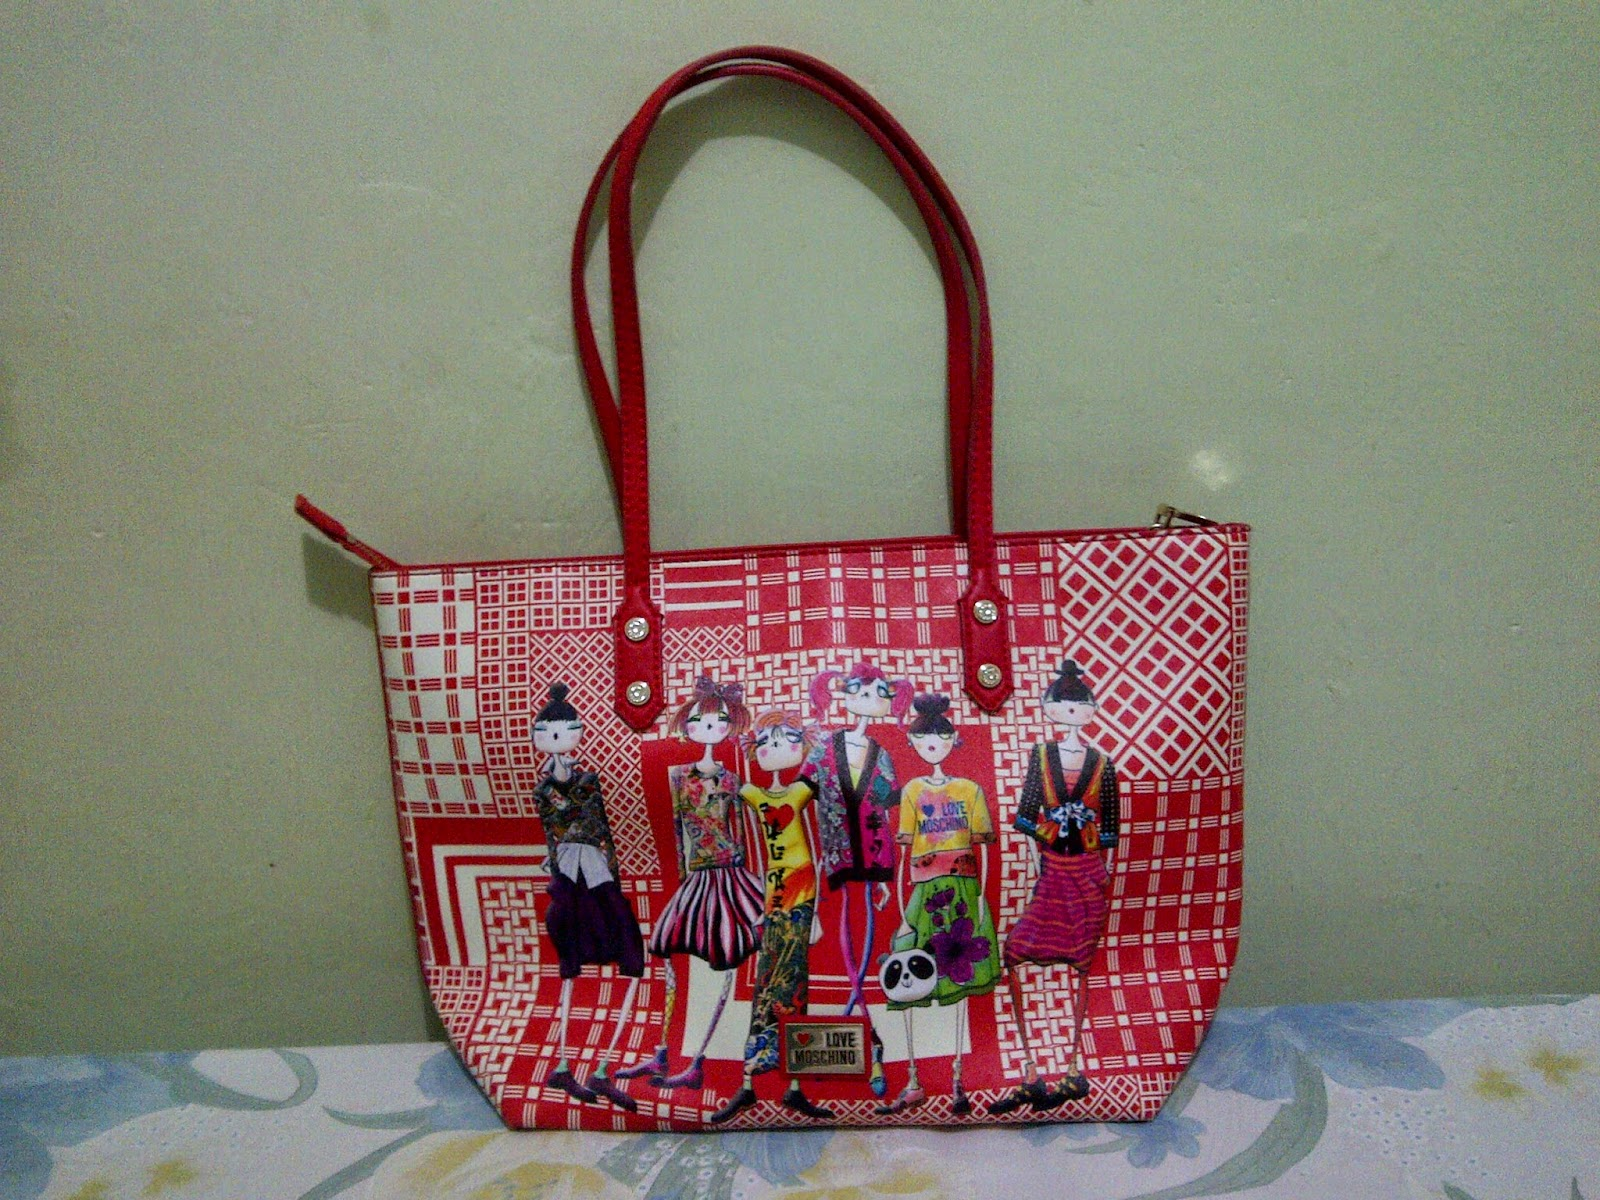 Love Moschino Tote Bag